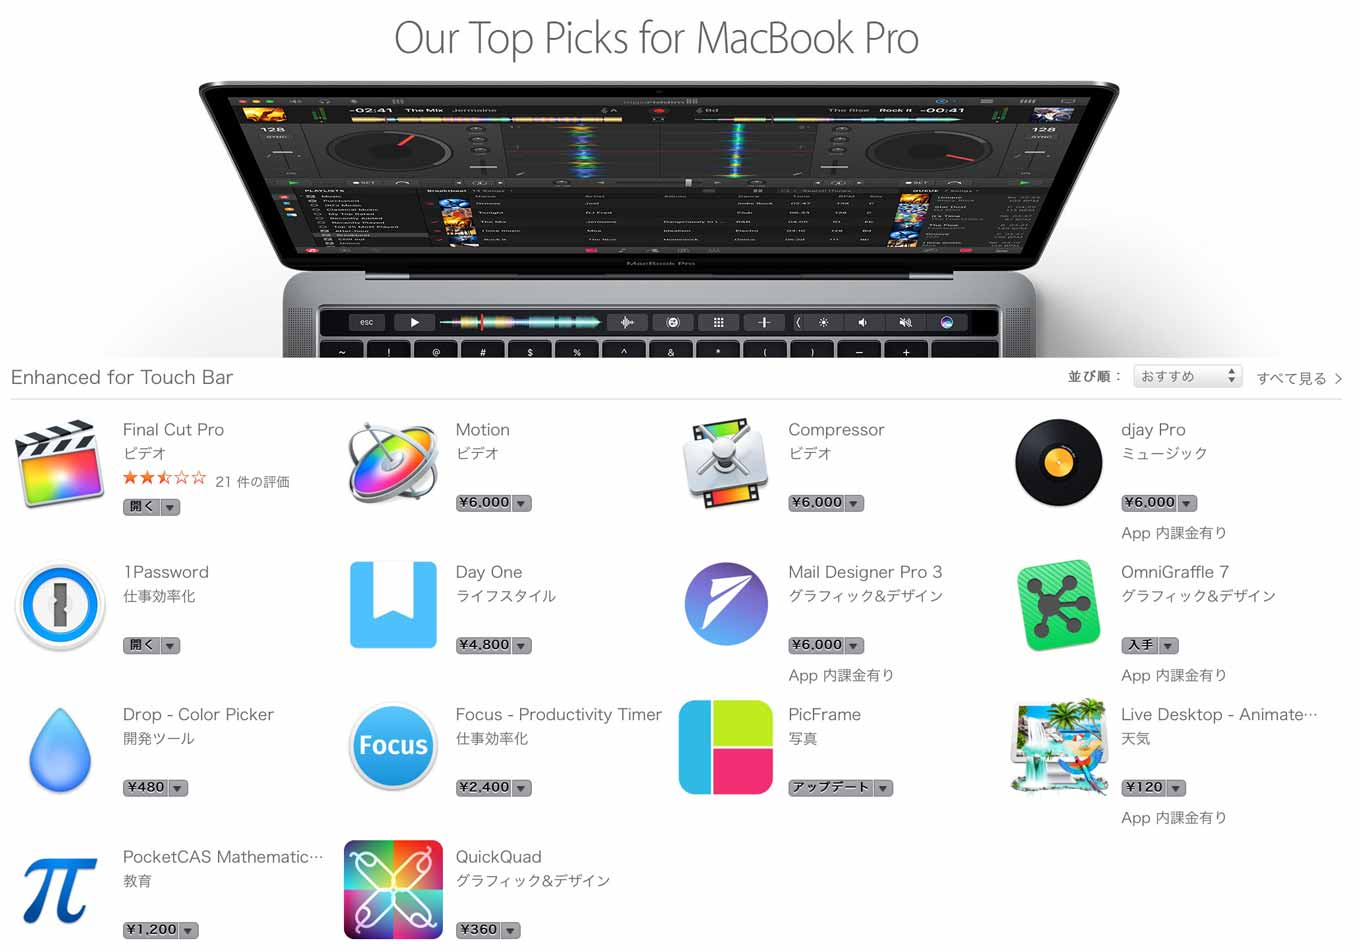 Apple、Mac App StoreでTouch Bar対応のアプリを紹介する「Our Top Picks for MacBook Pro」を公開